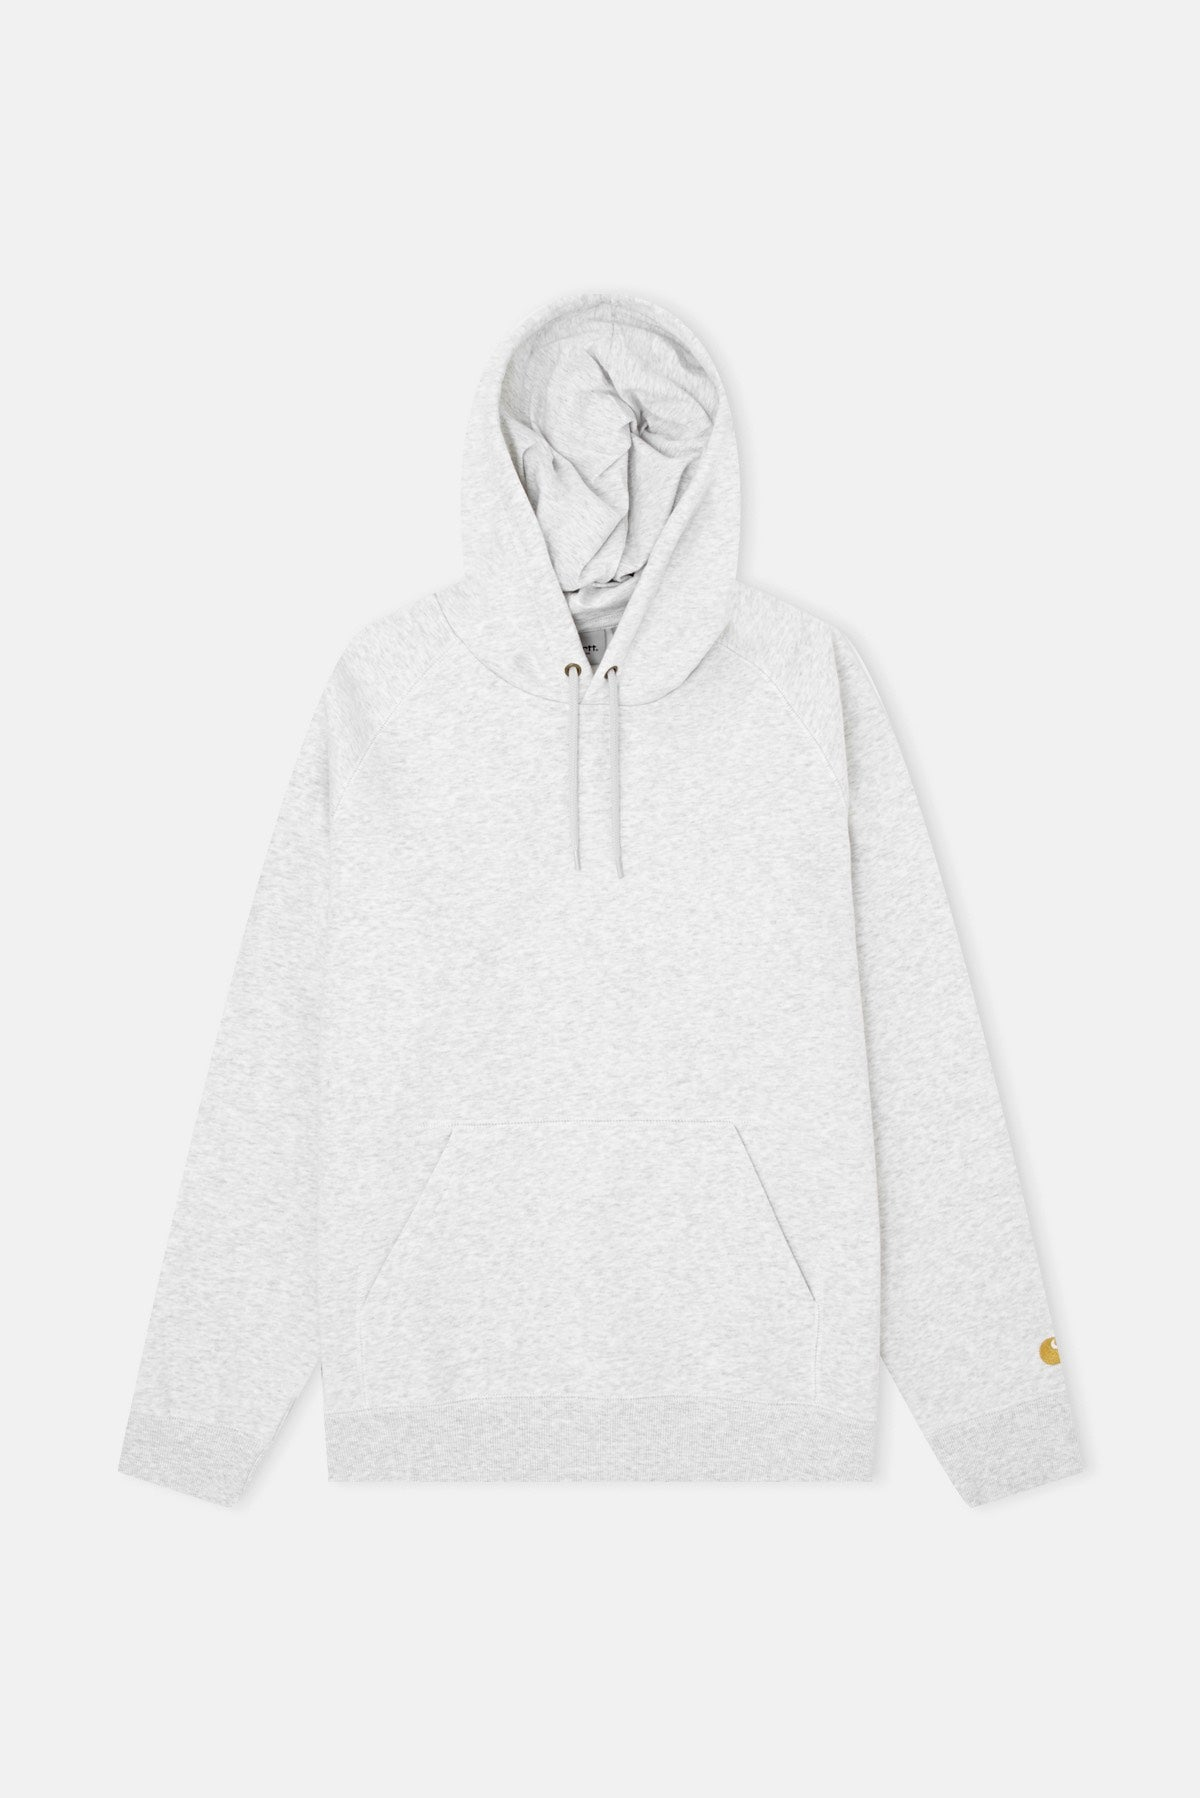 Carhartt Hooded Chase Hoodie available from Priory c5fb1592c